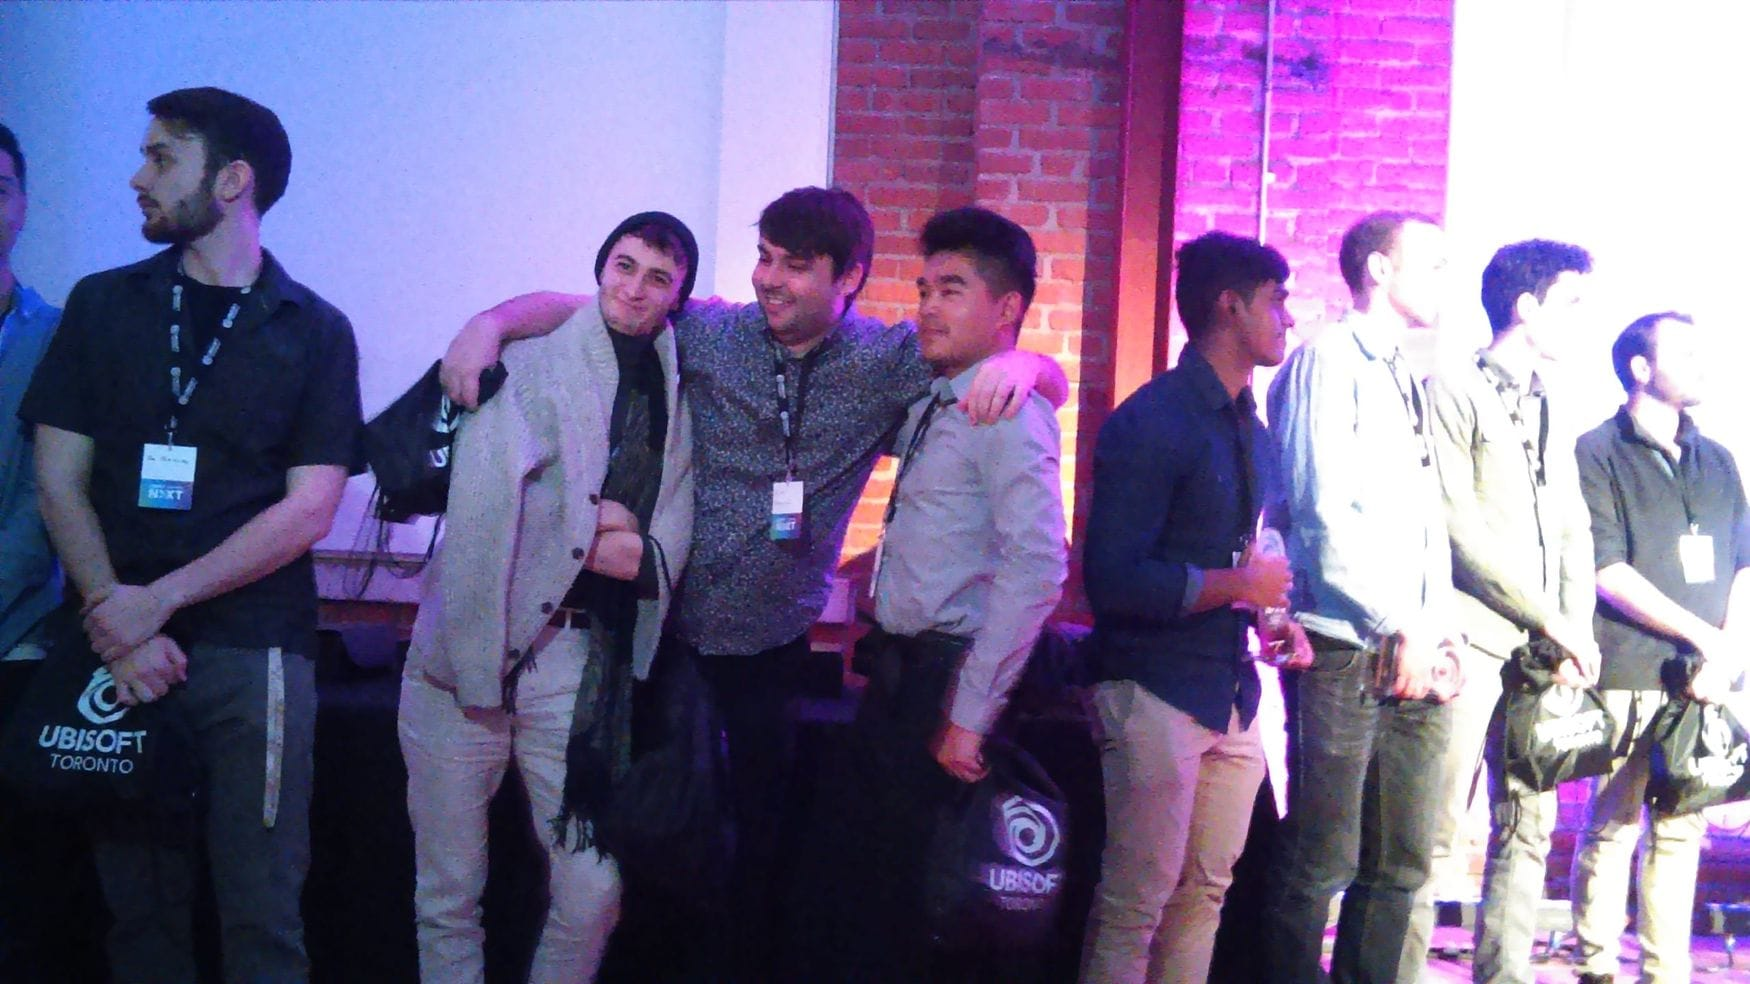 Max the Mutt year 2 student, and third place winner, Sergi Iranzo, Max the Mutt Grad, and second place winner, Adam Homonlyo with Friend at the 2019 Ubisoft Nxt Awards